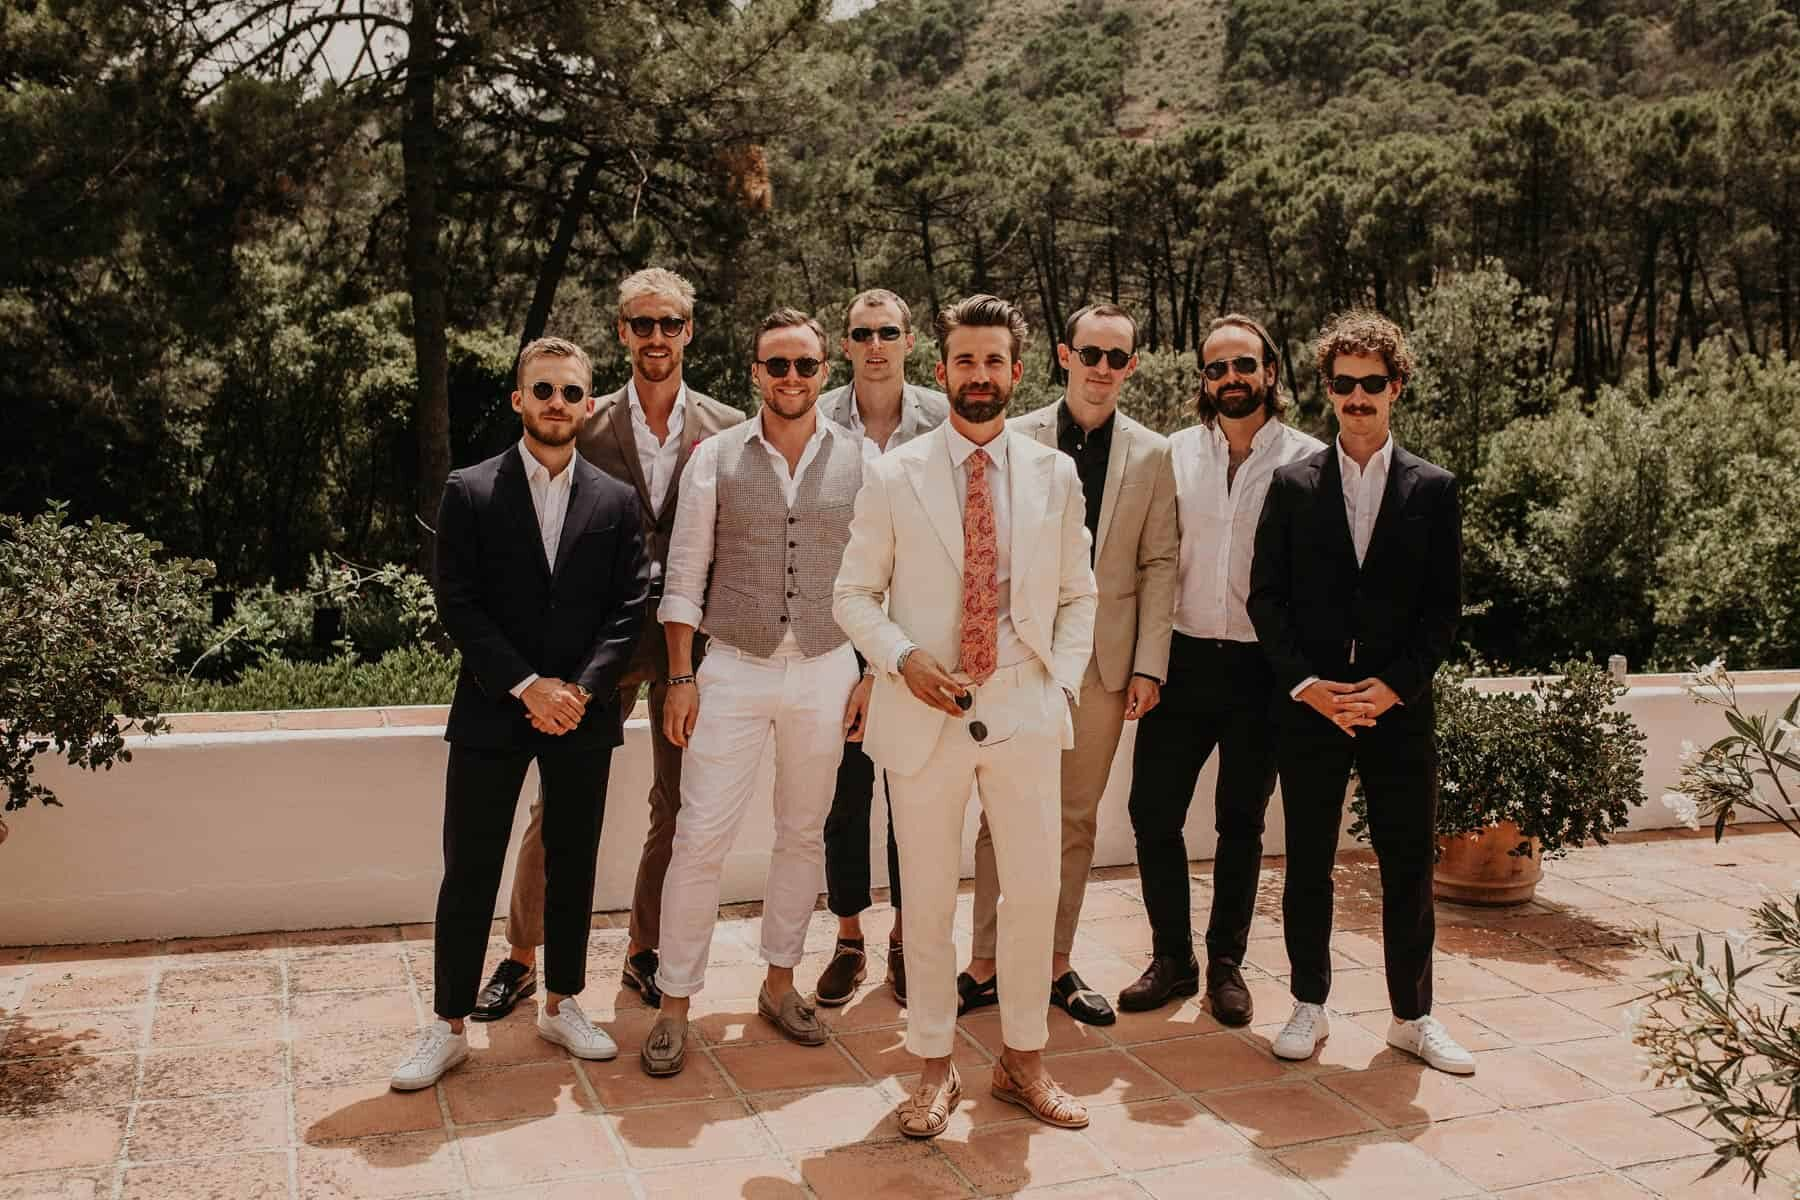 groom in white suit and mismatched groomsmen